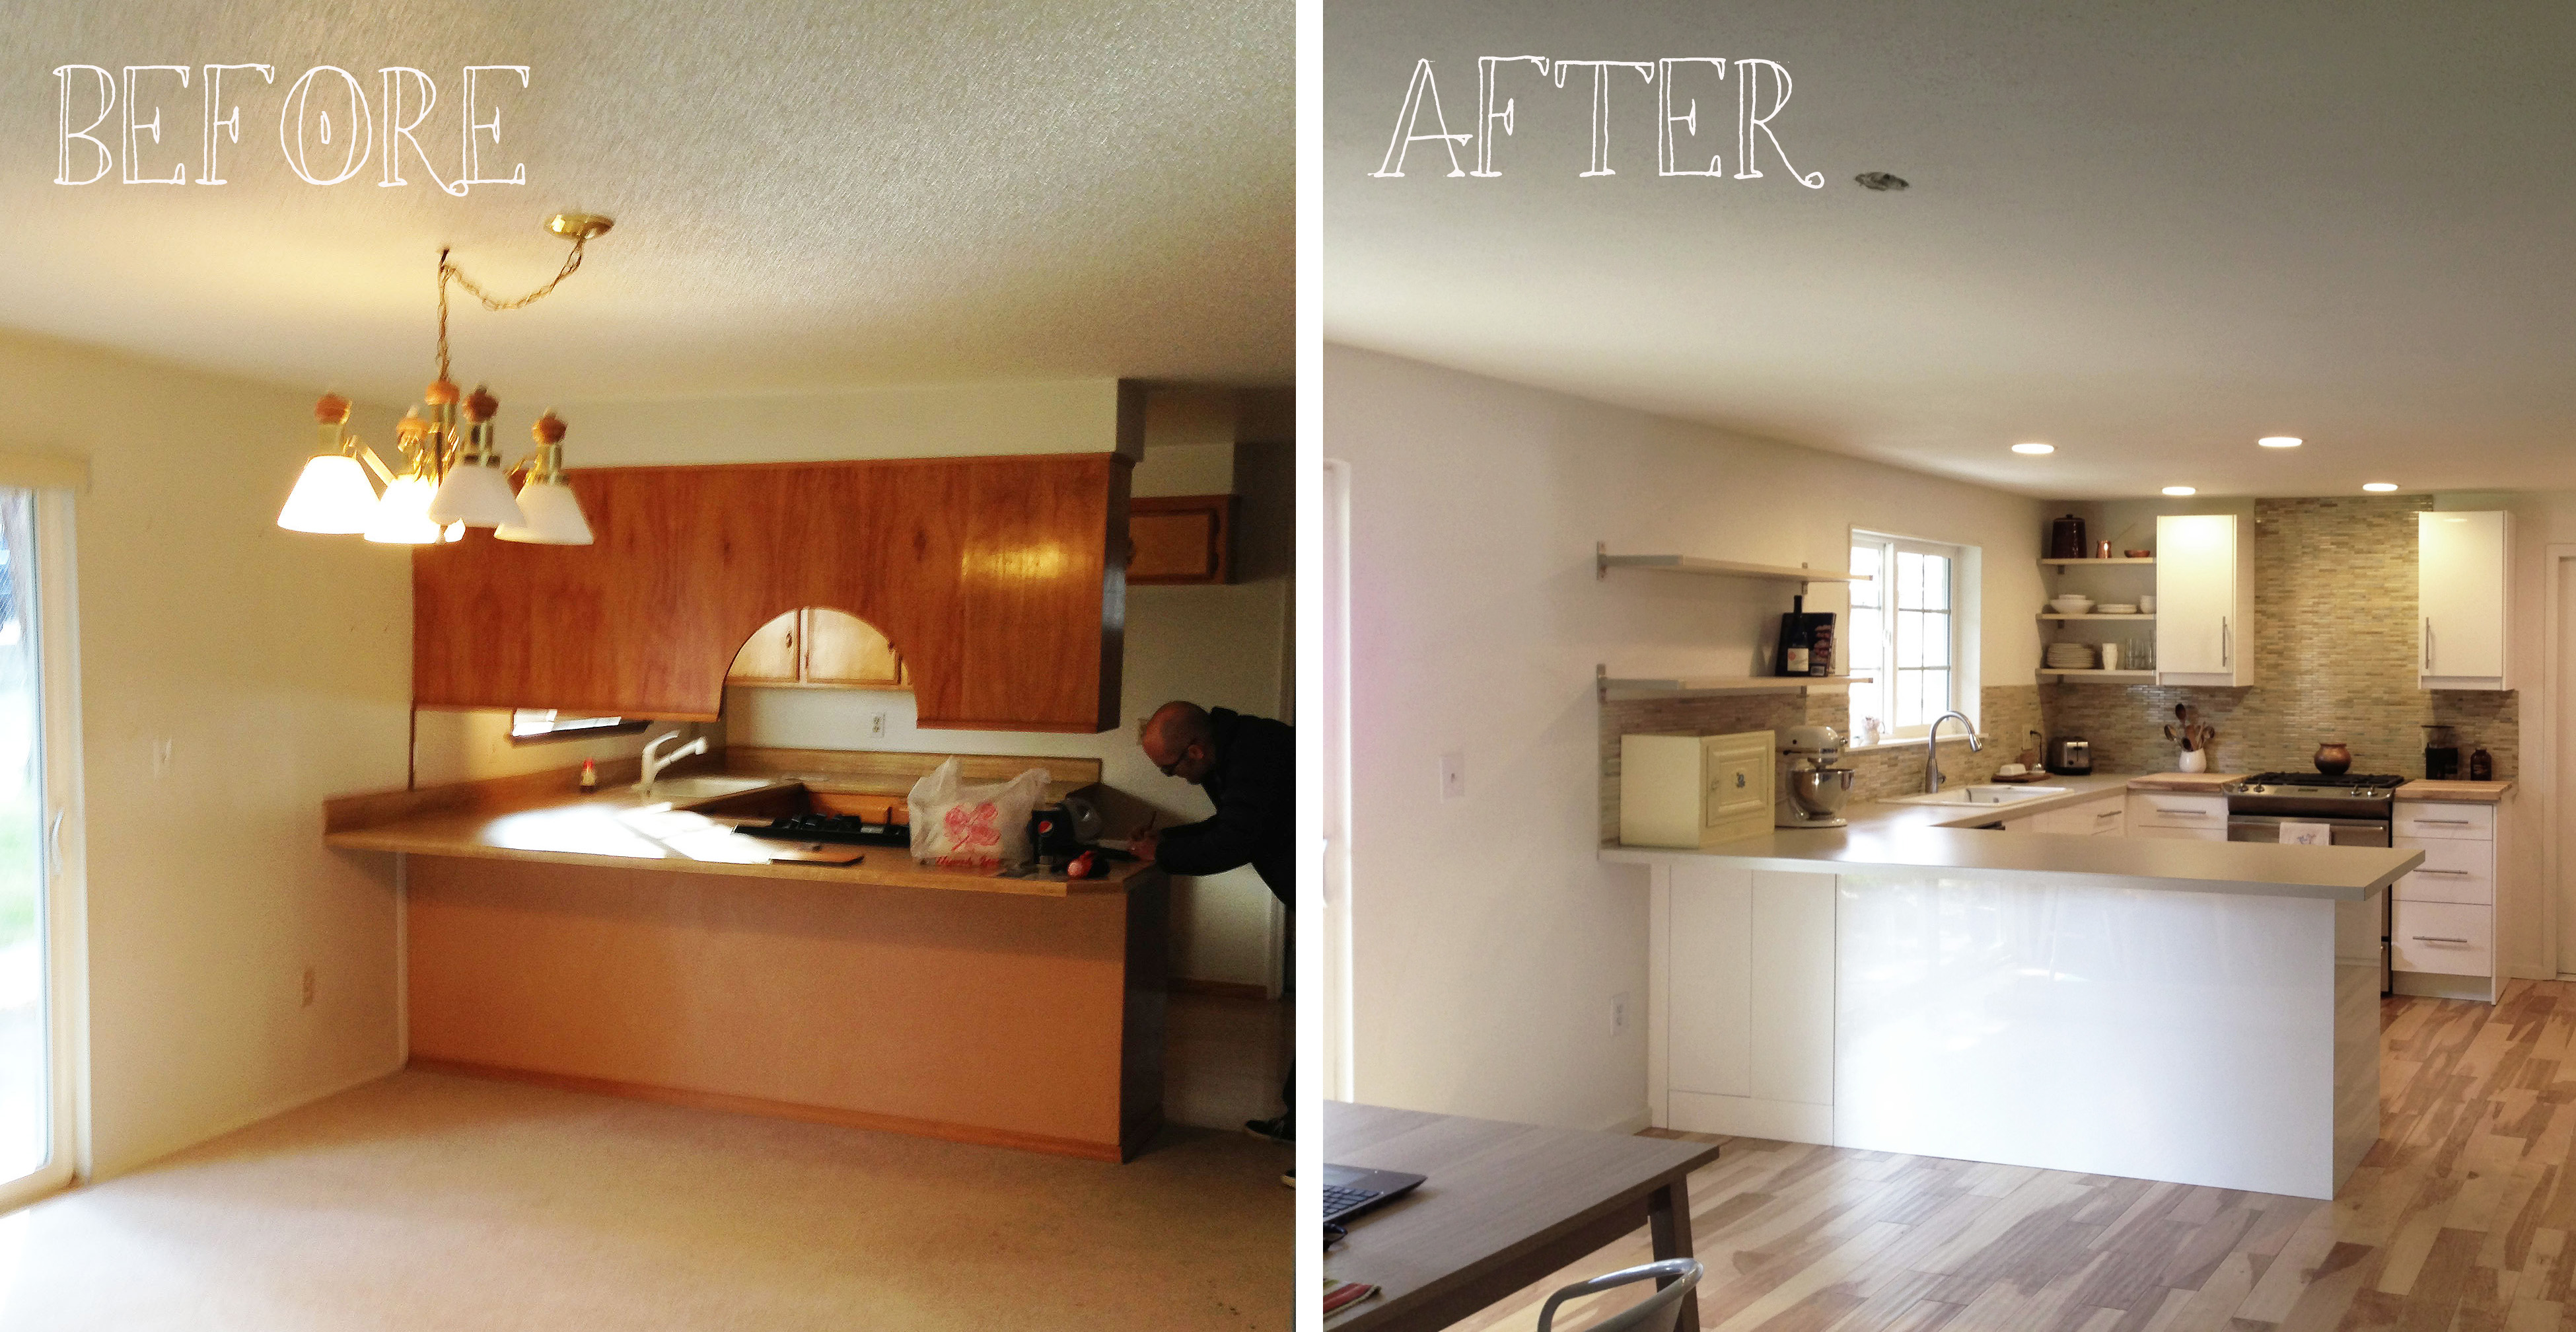 small kitchen remodel before and after with white kitchen cabinets and backsplashes combined with sink and - Small Kitchen Remodel Before And After